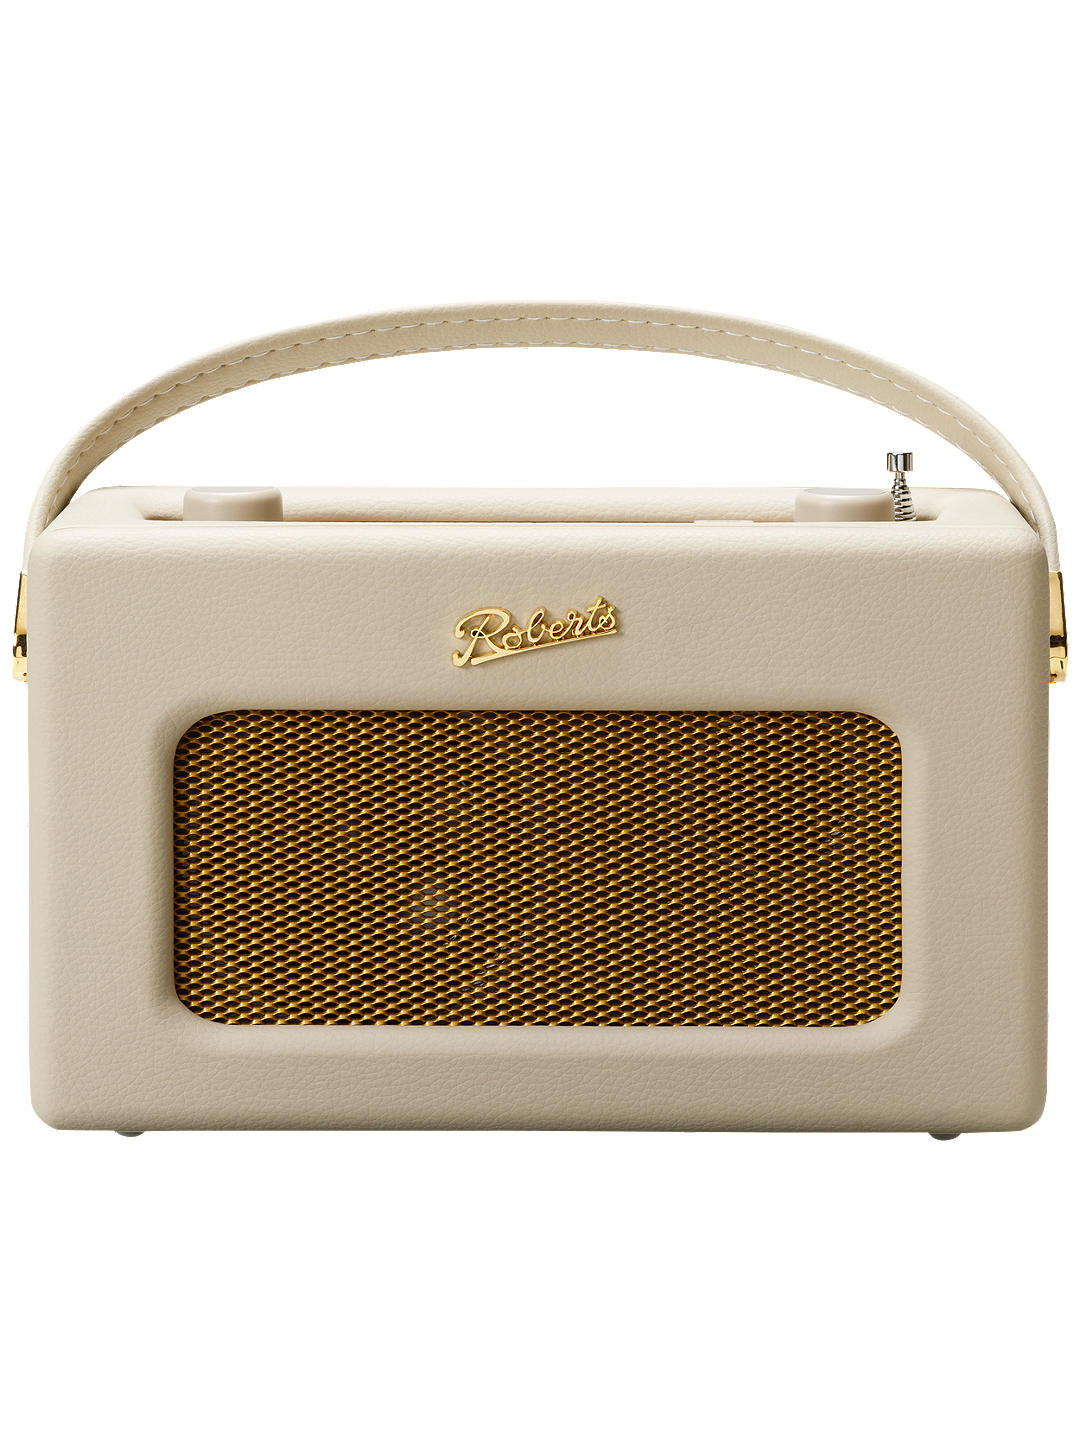 ROBERTS REVIVAL iSTREAM 3 SMART RADIO PASTEL CREAM